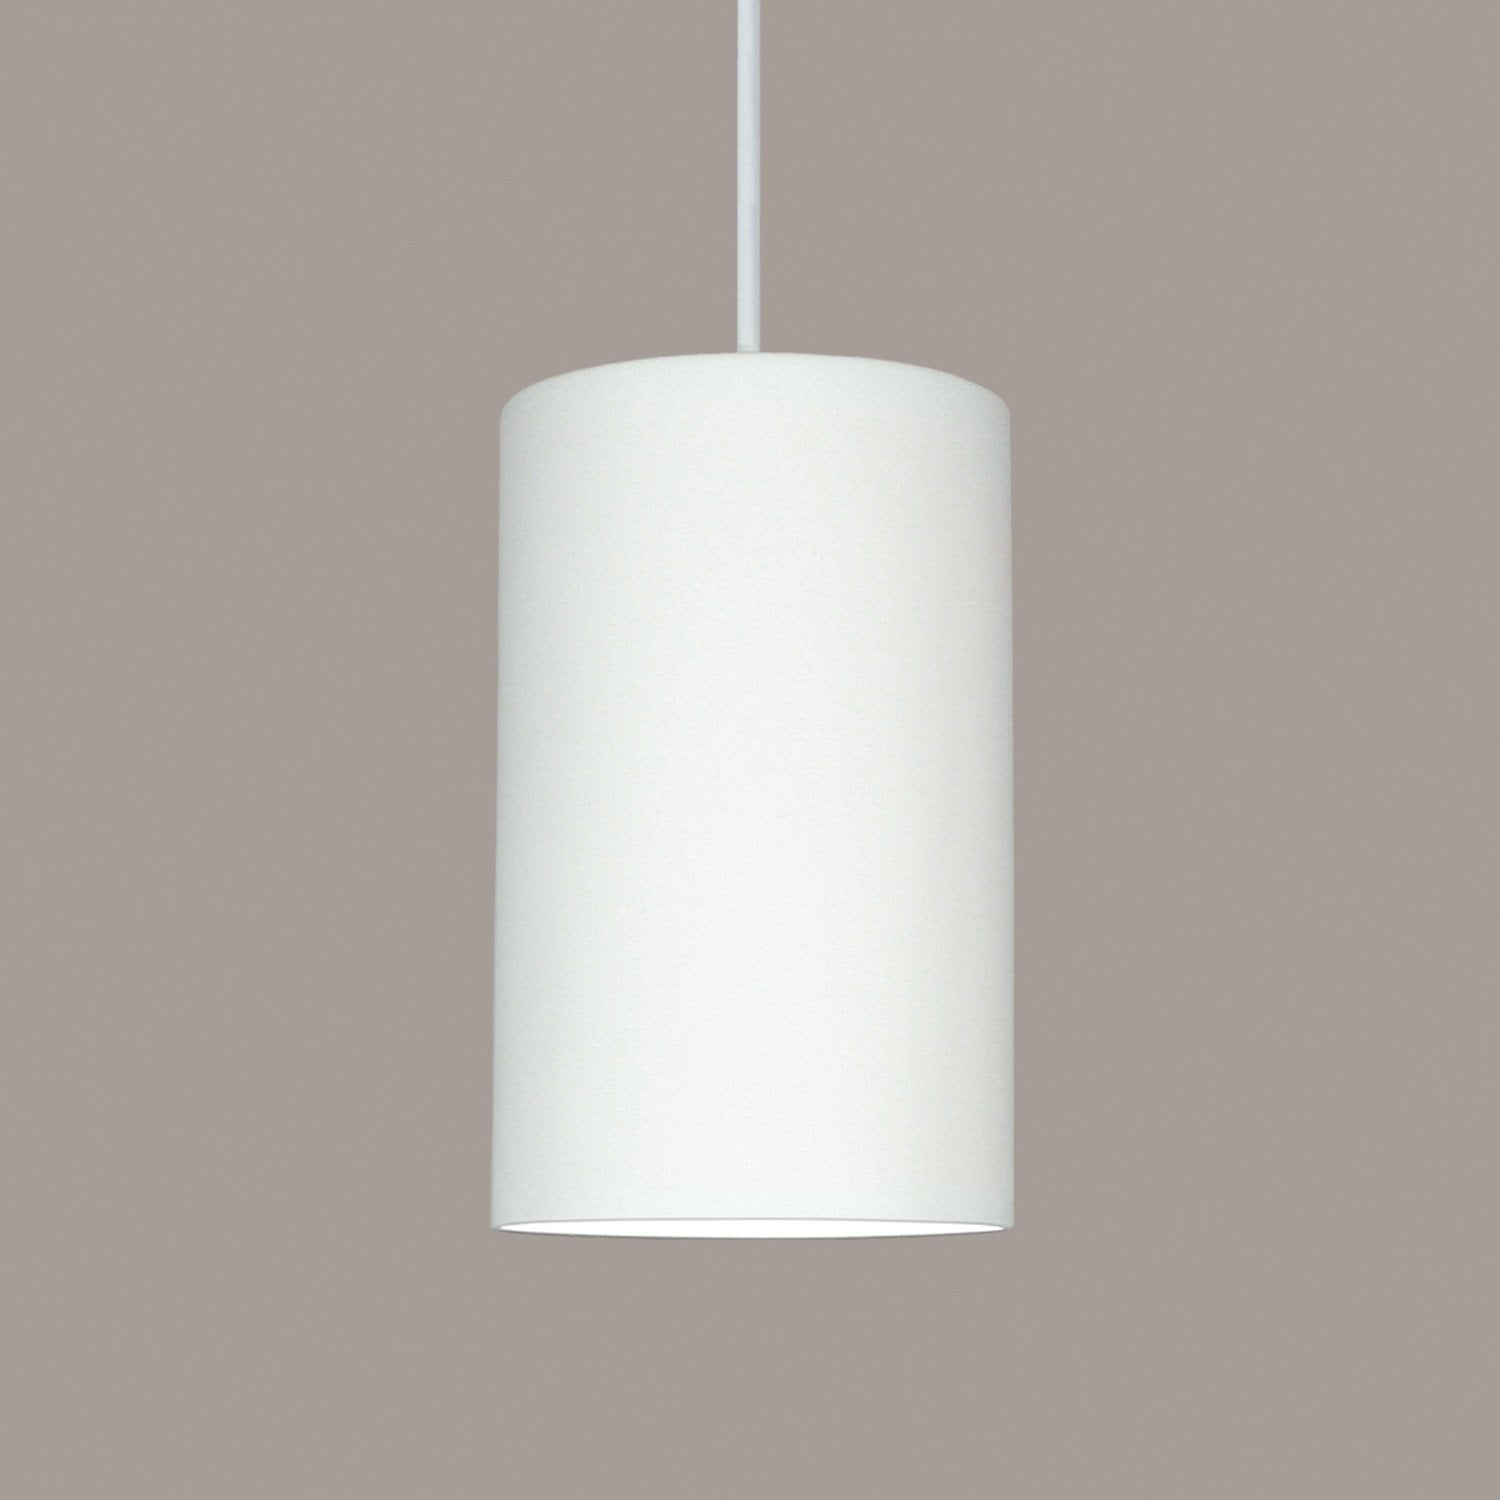 A19 P202-CFL13-A21-WCC Islands of Light Collection Andros Dusty Teal Finish Pendant